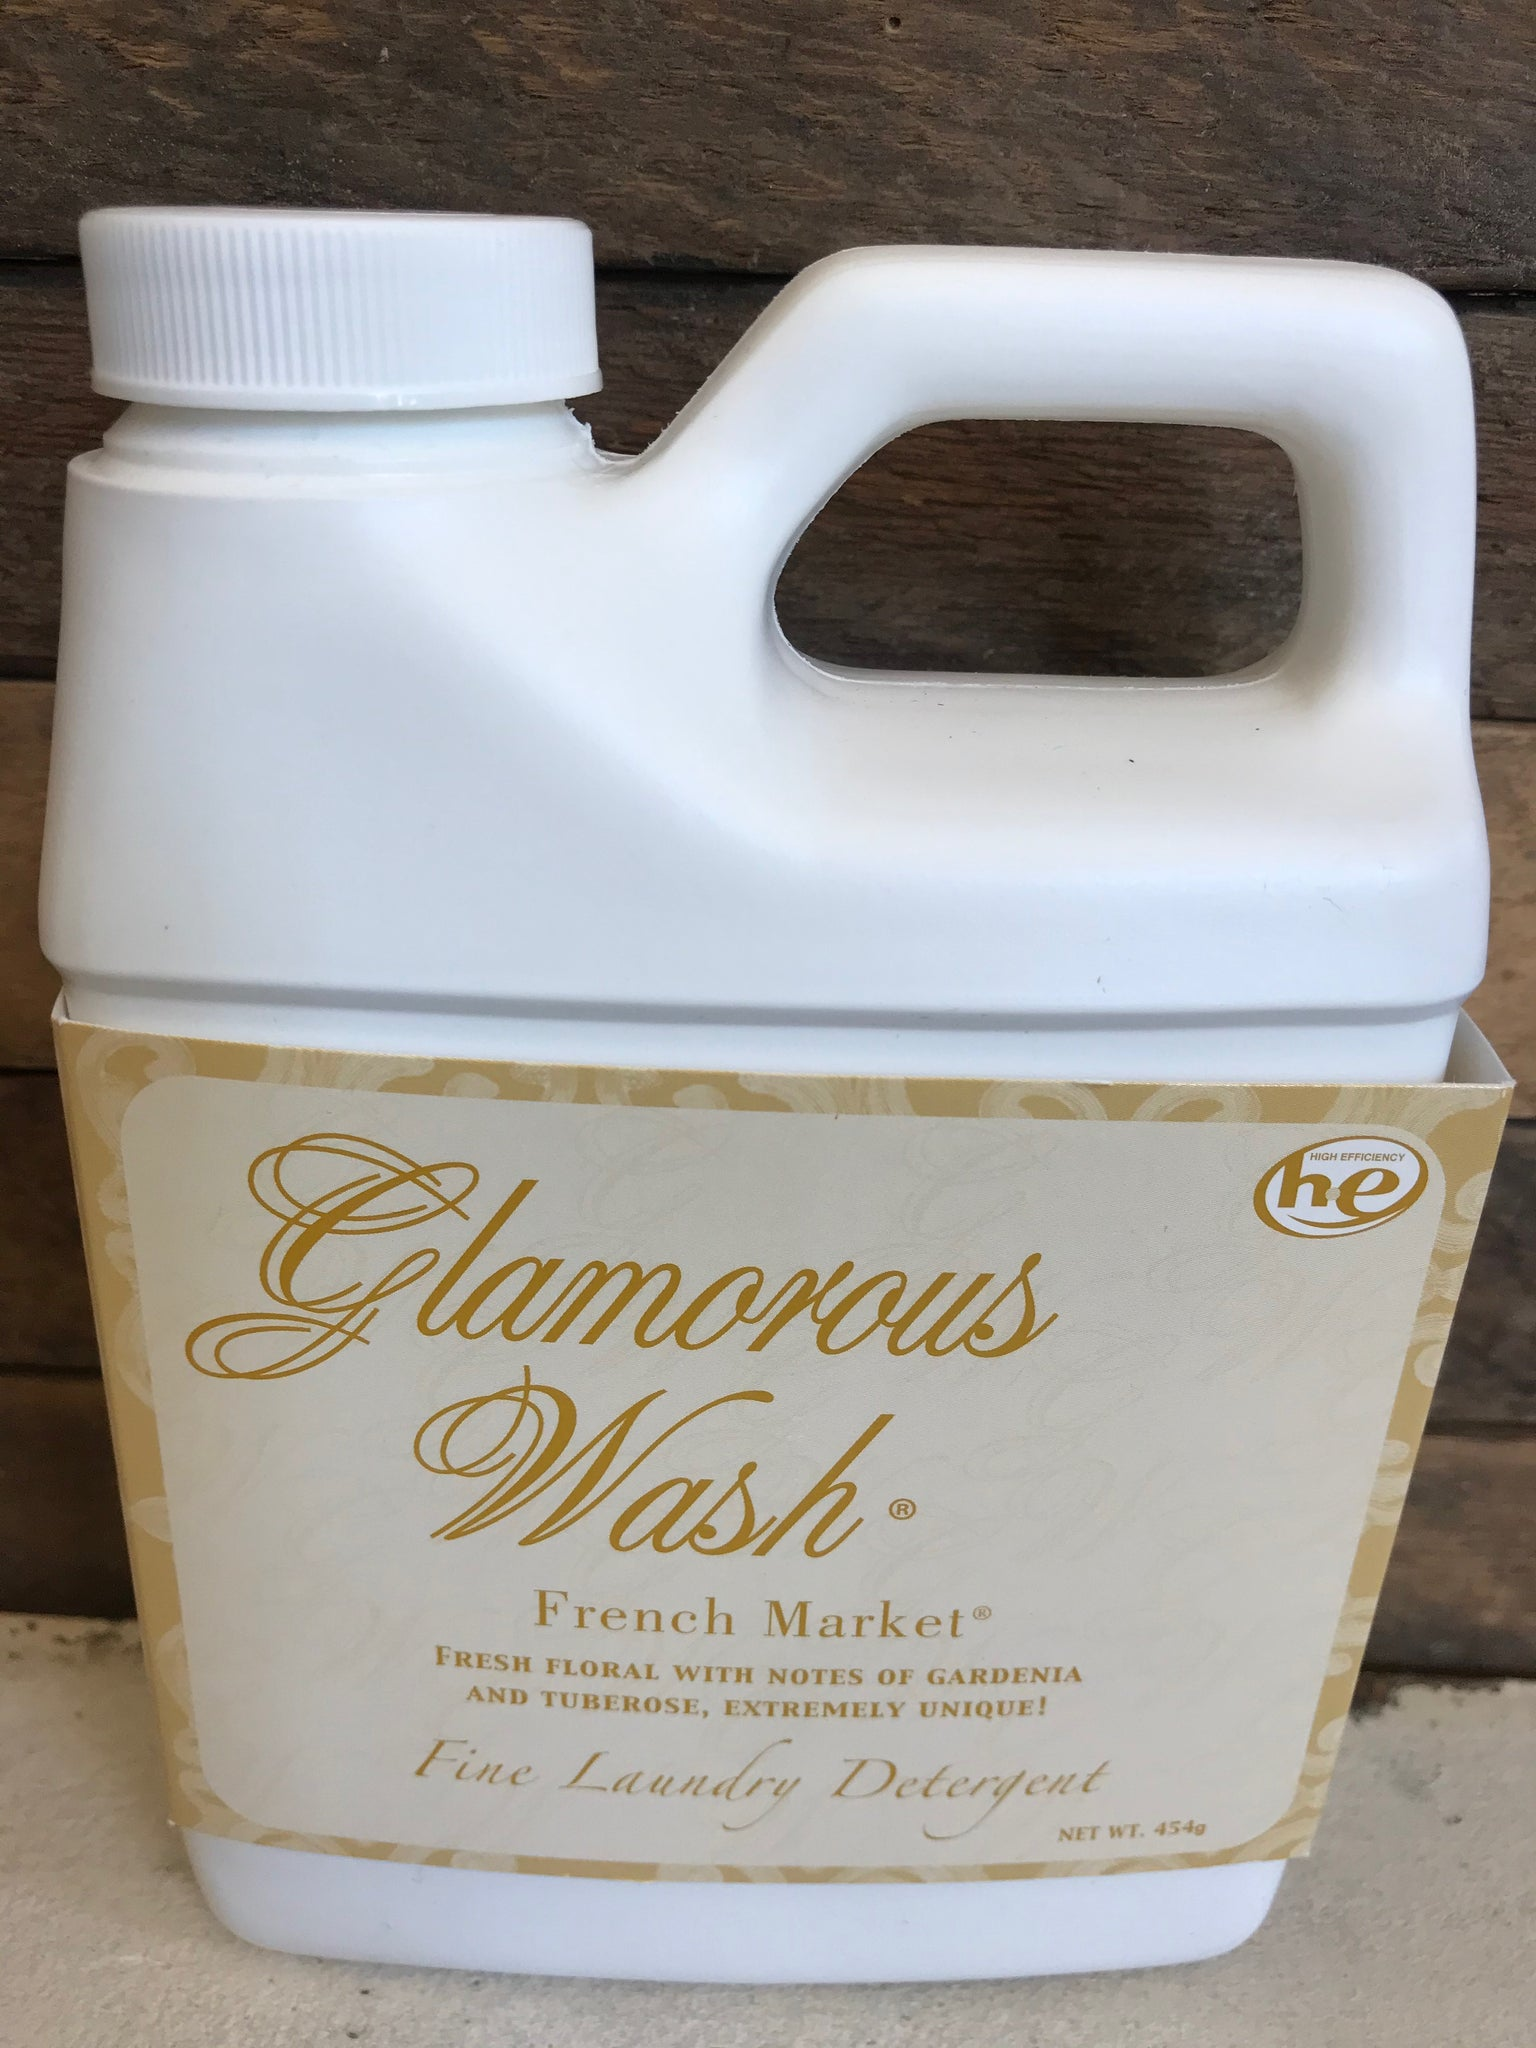 French Market Glamorous Wash 454 grams